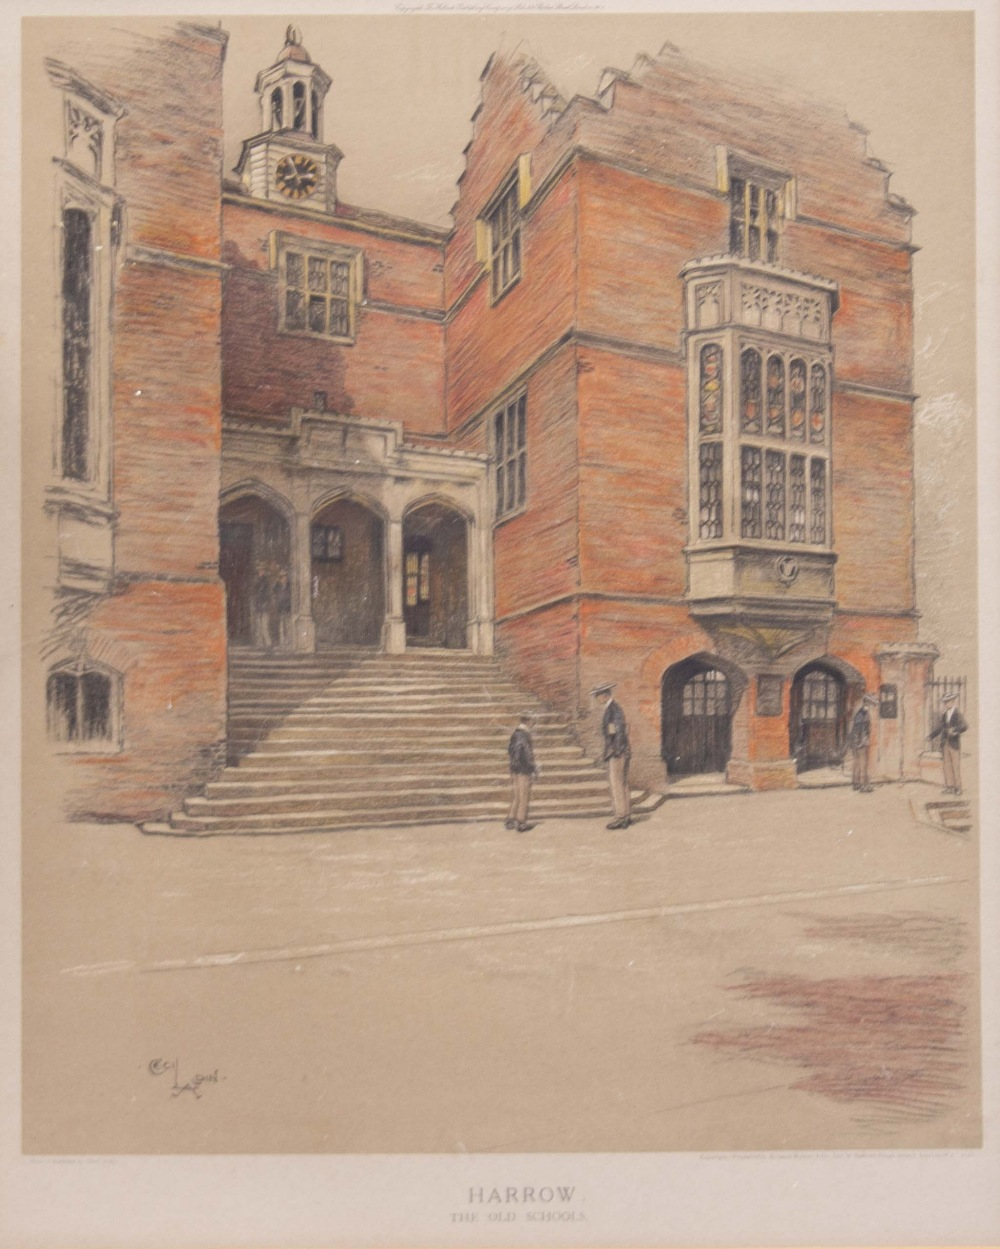 Lot 430 - AFTER CECIL ALDIN 'Harrow Old School', lithograph, 39cm x 33cm together with a 19th century